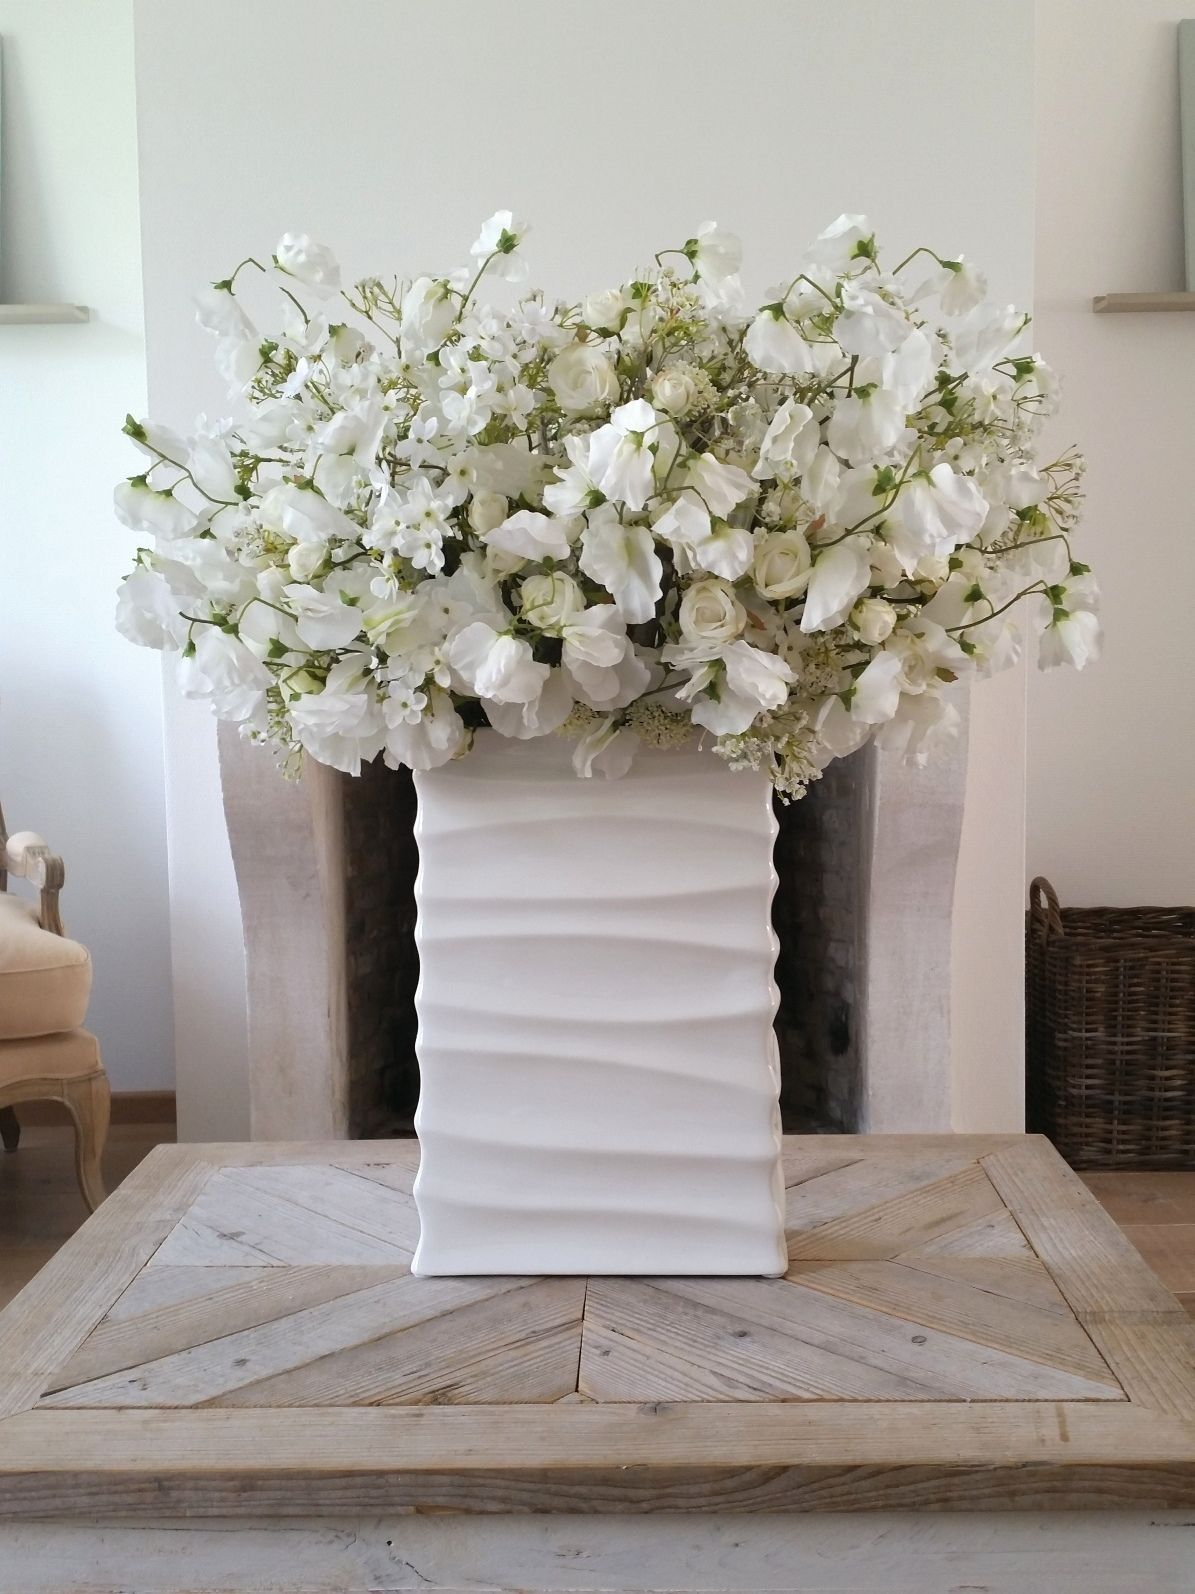 Large White Vase With Bouquet Of Artificial White Flowers Flower